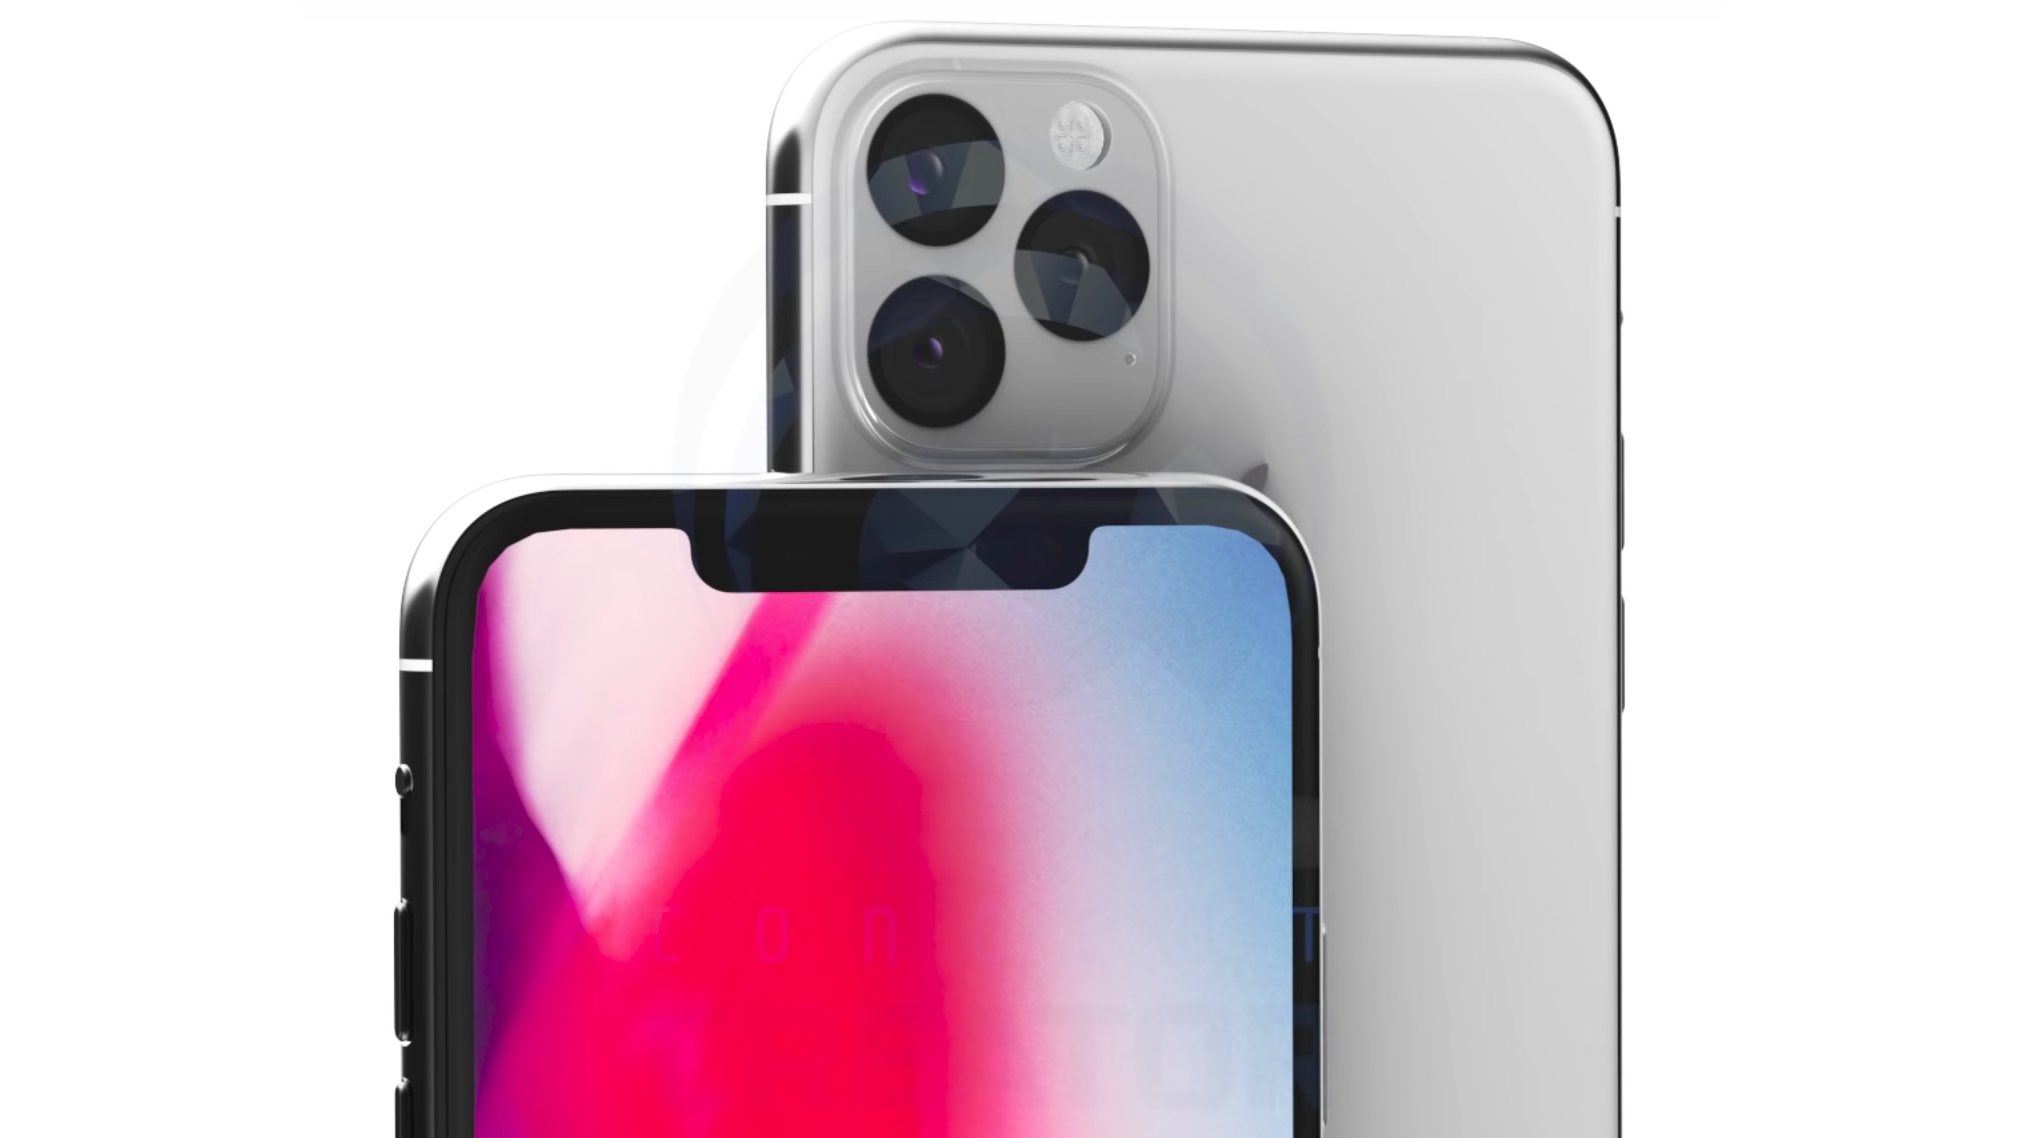 smartphone with best camera 2020 Best upcoming phones 2019: Release dates for the most anticipated